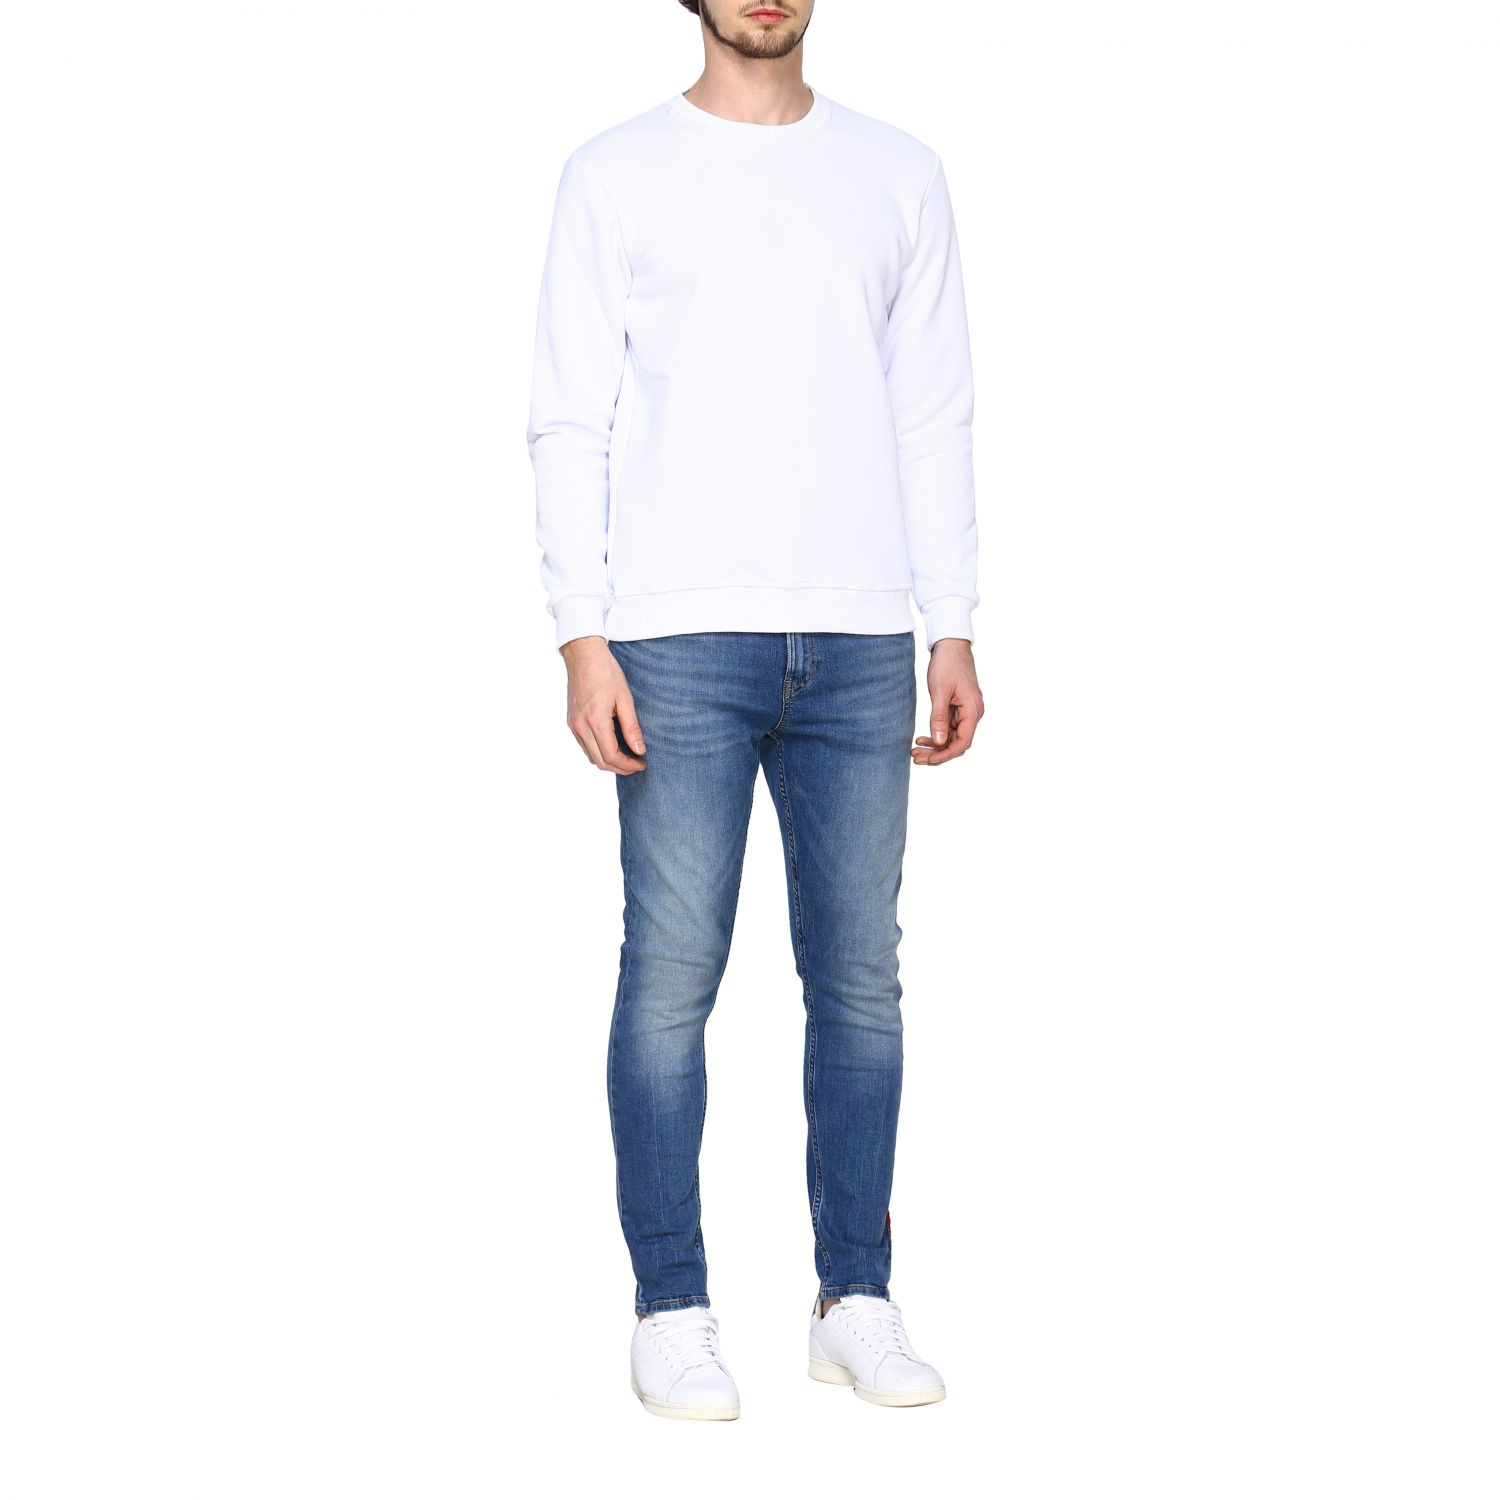 Sweatshirt 1921: Sweatshirt men 1921 white 2